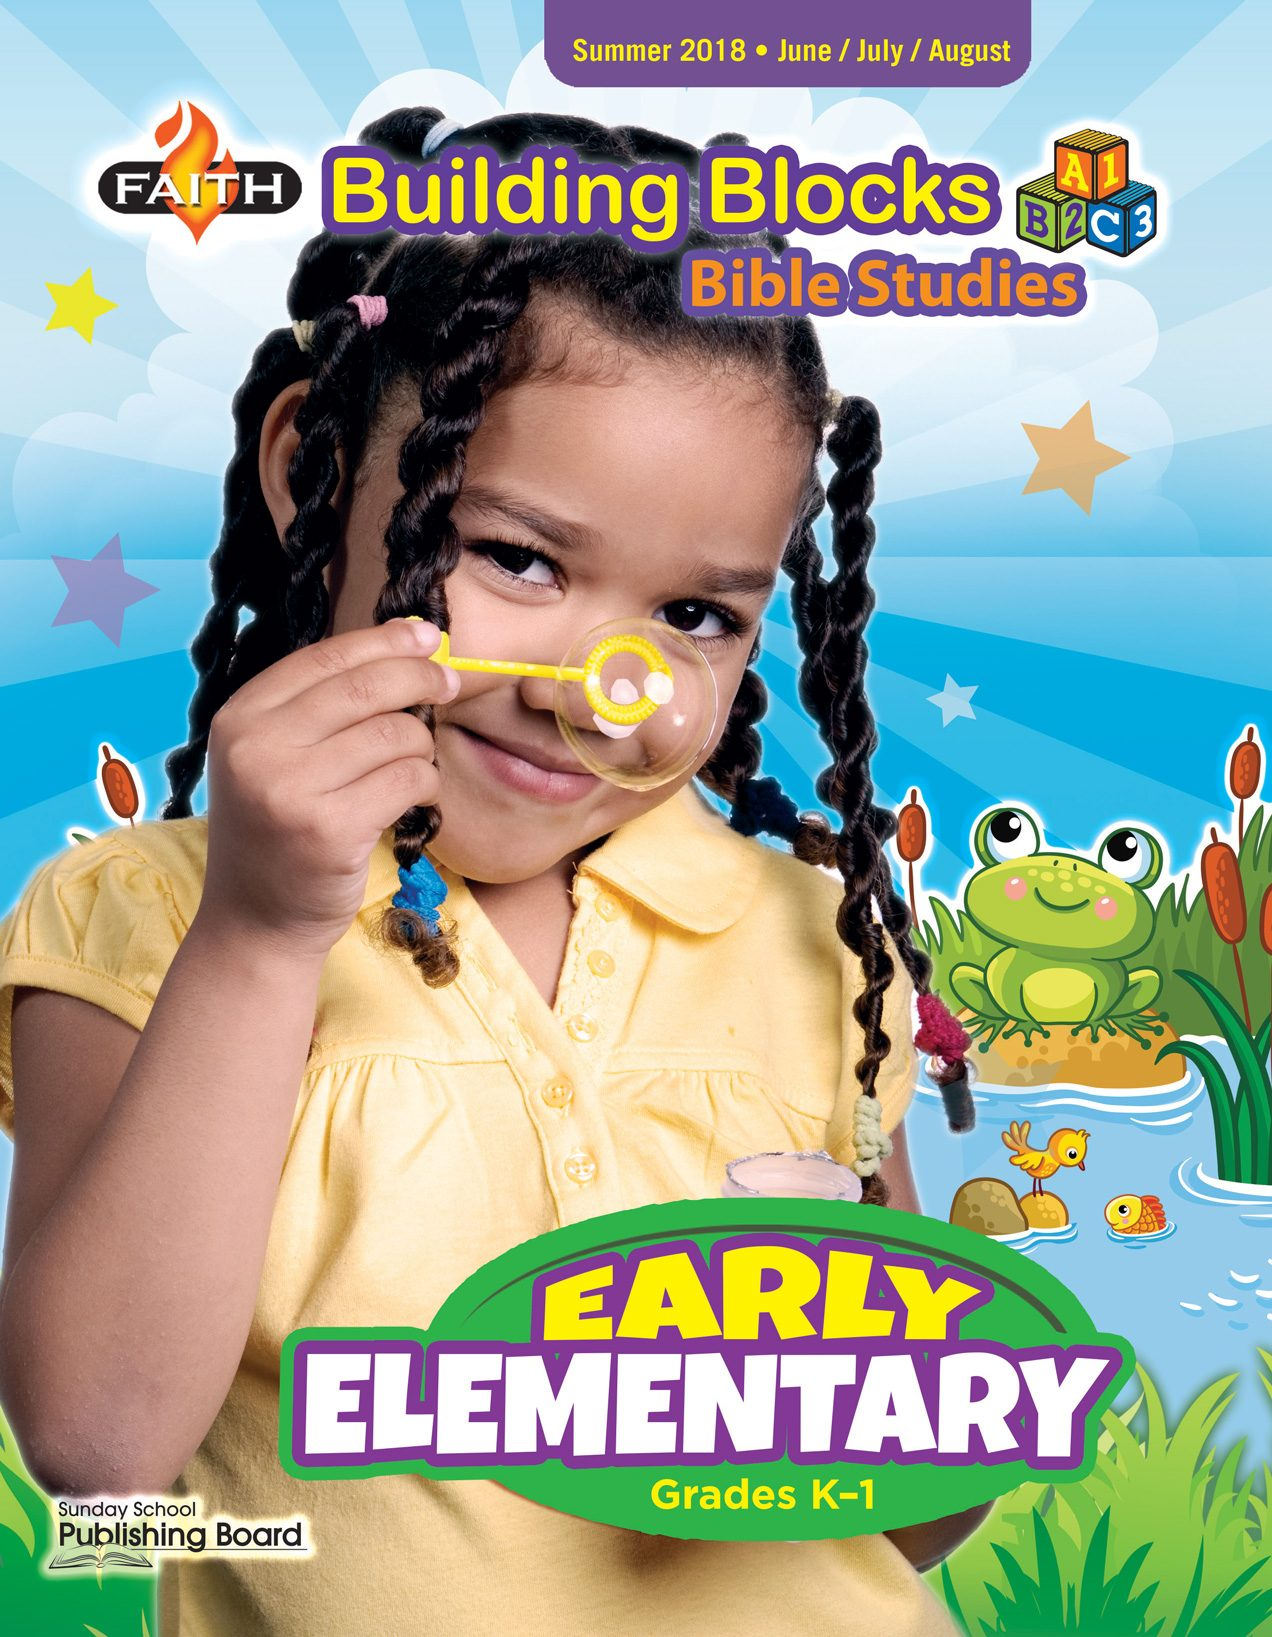 Faith Building Blocks Bible Studies, Early Elementary for Grades K-1 (Summer 2018)-Digital Edition